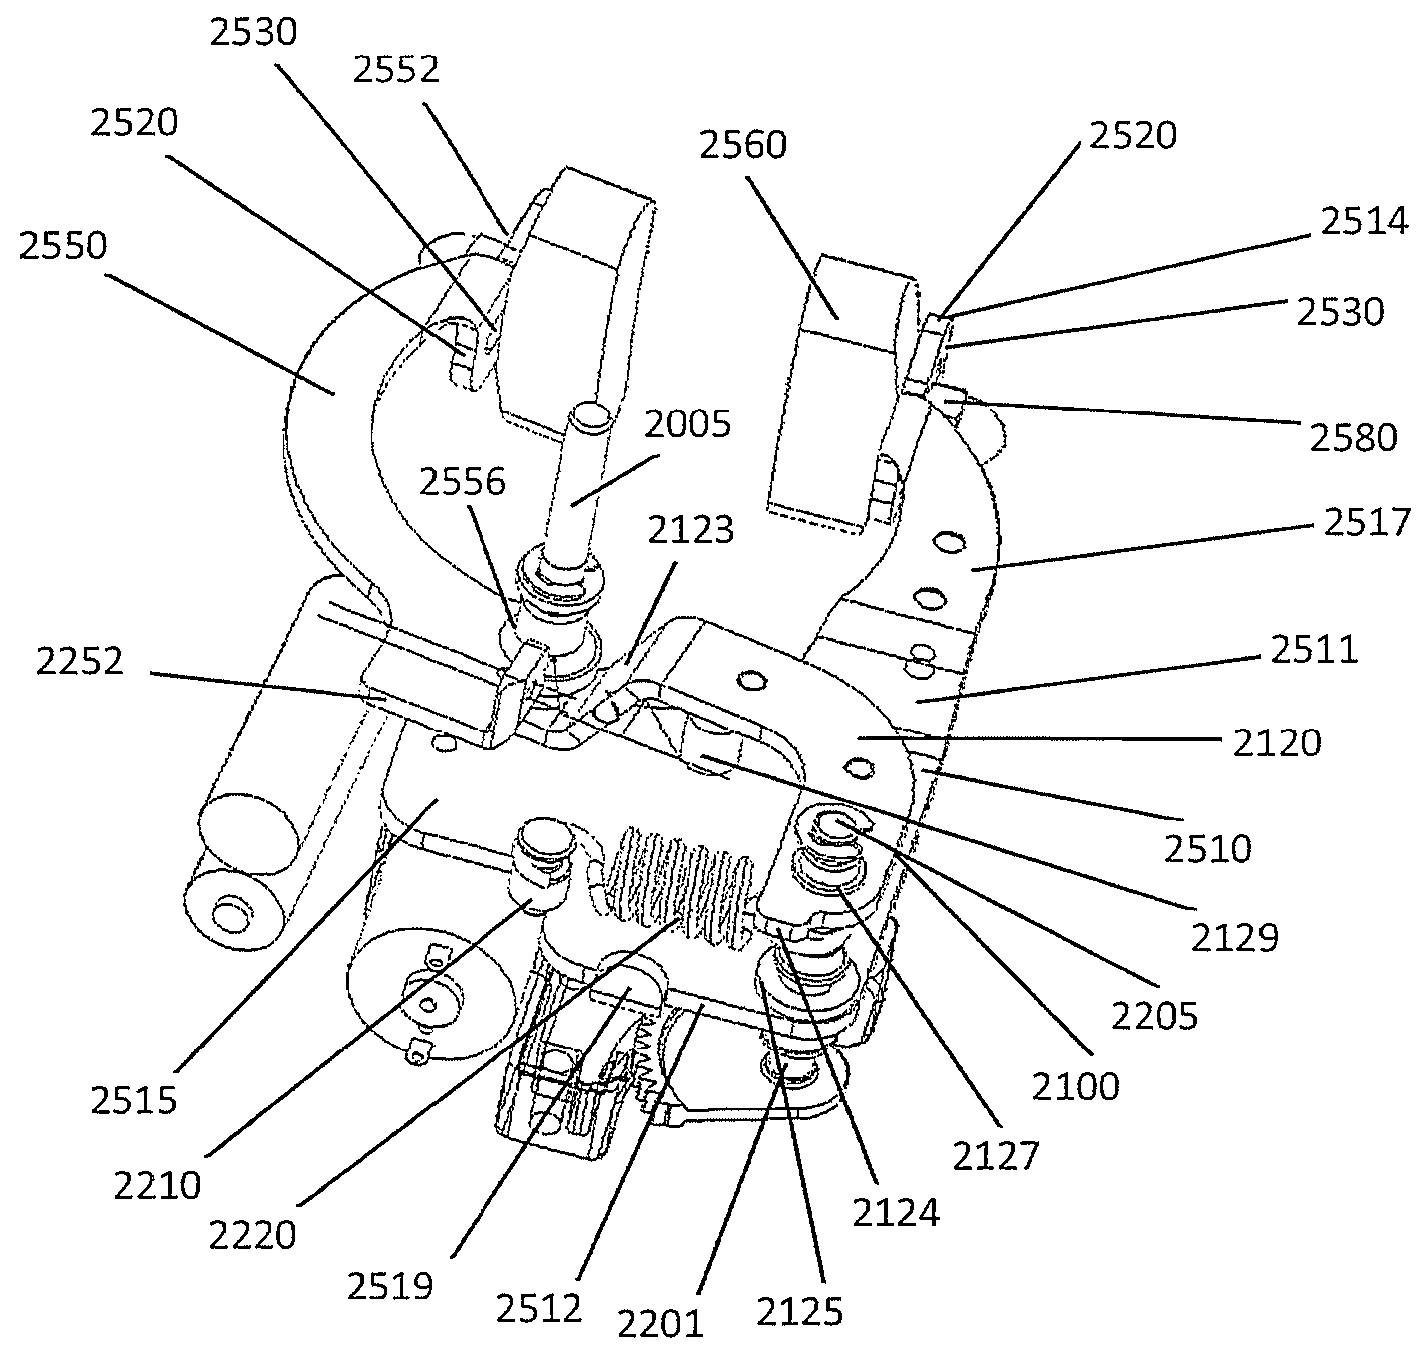 US08899384-00.png